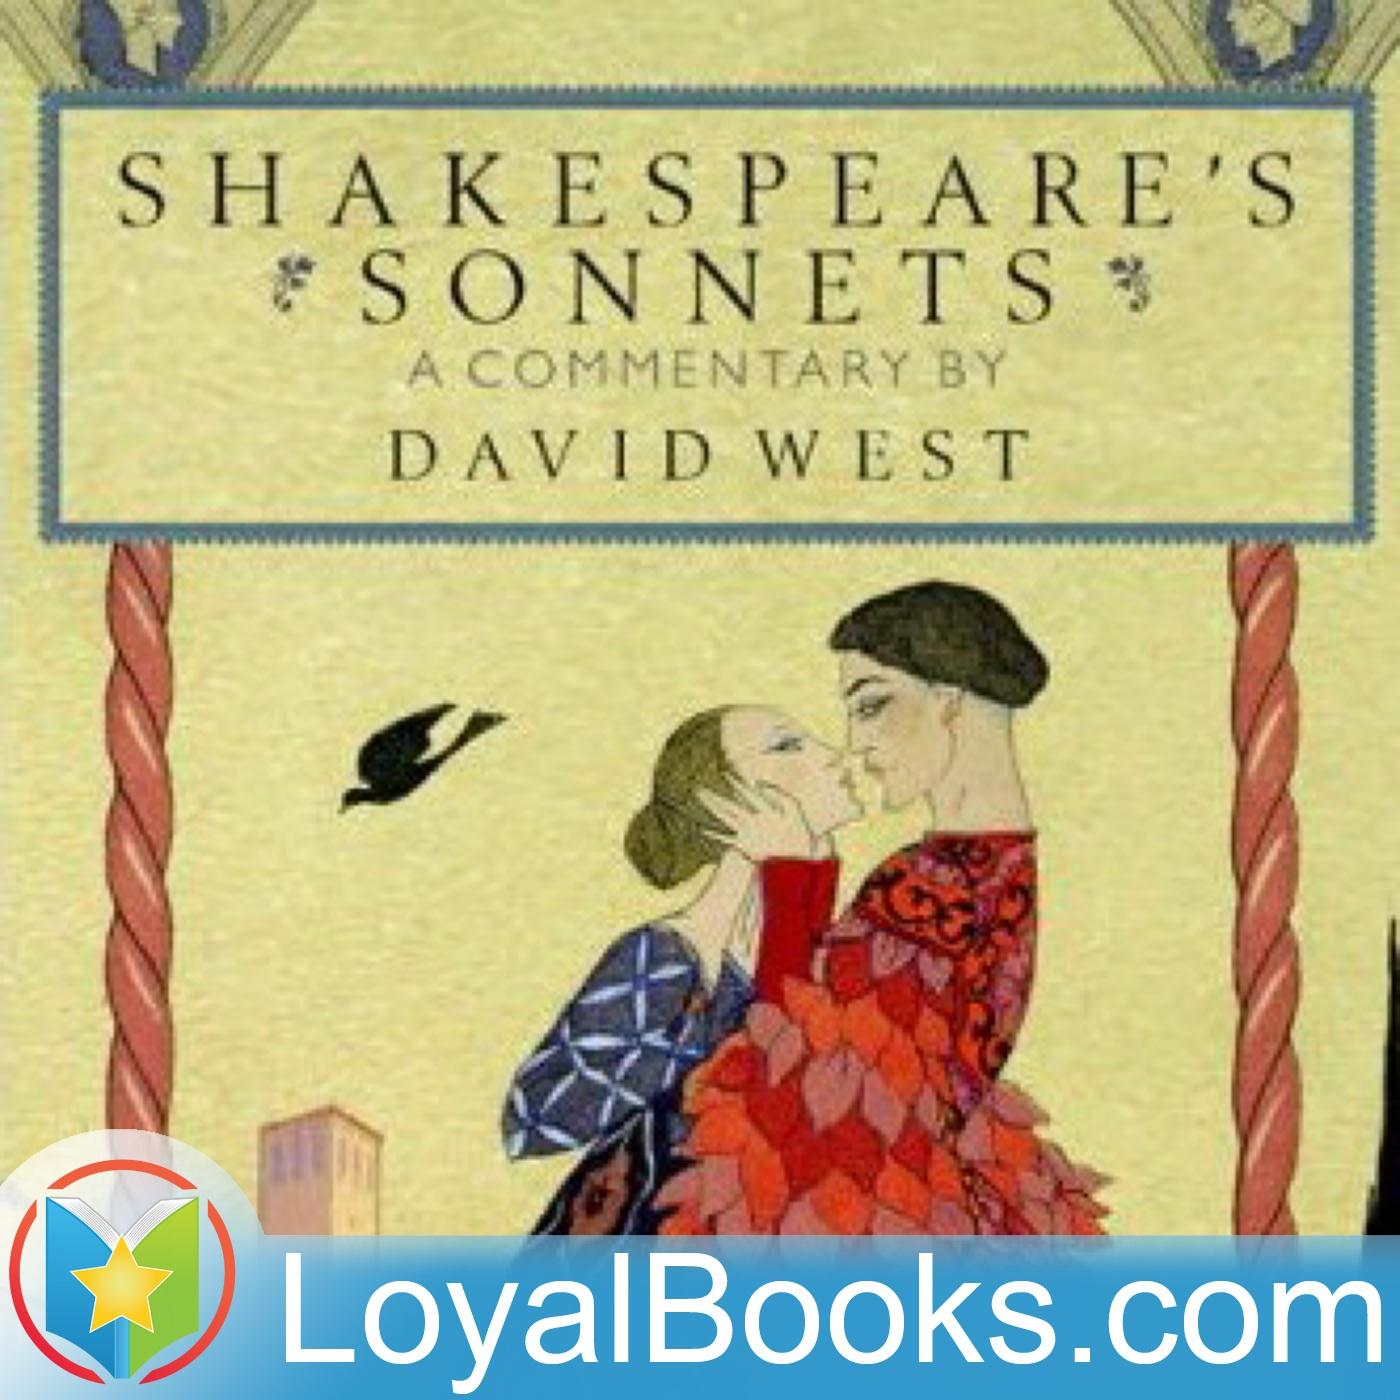 <![CDATA[Shakespeare's Sonnets by William Shakespeare]]>